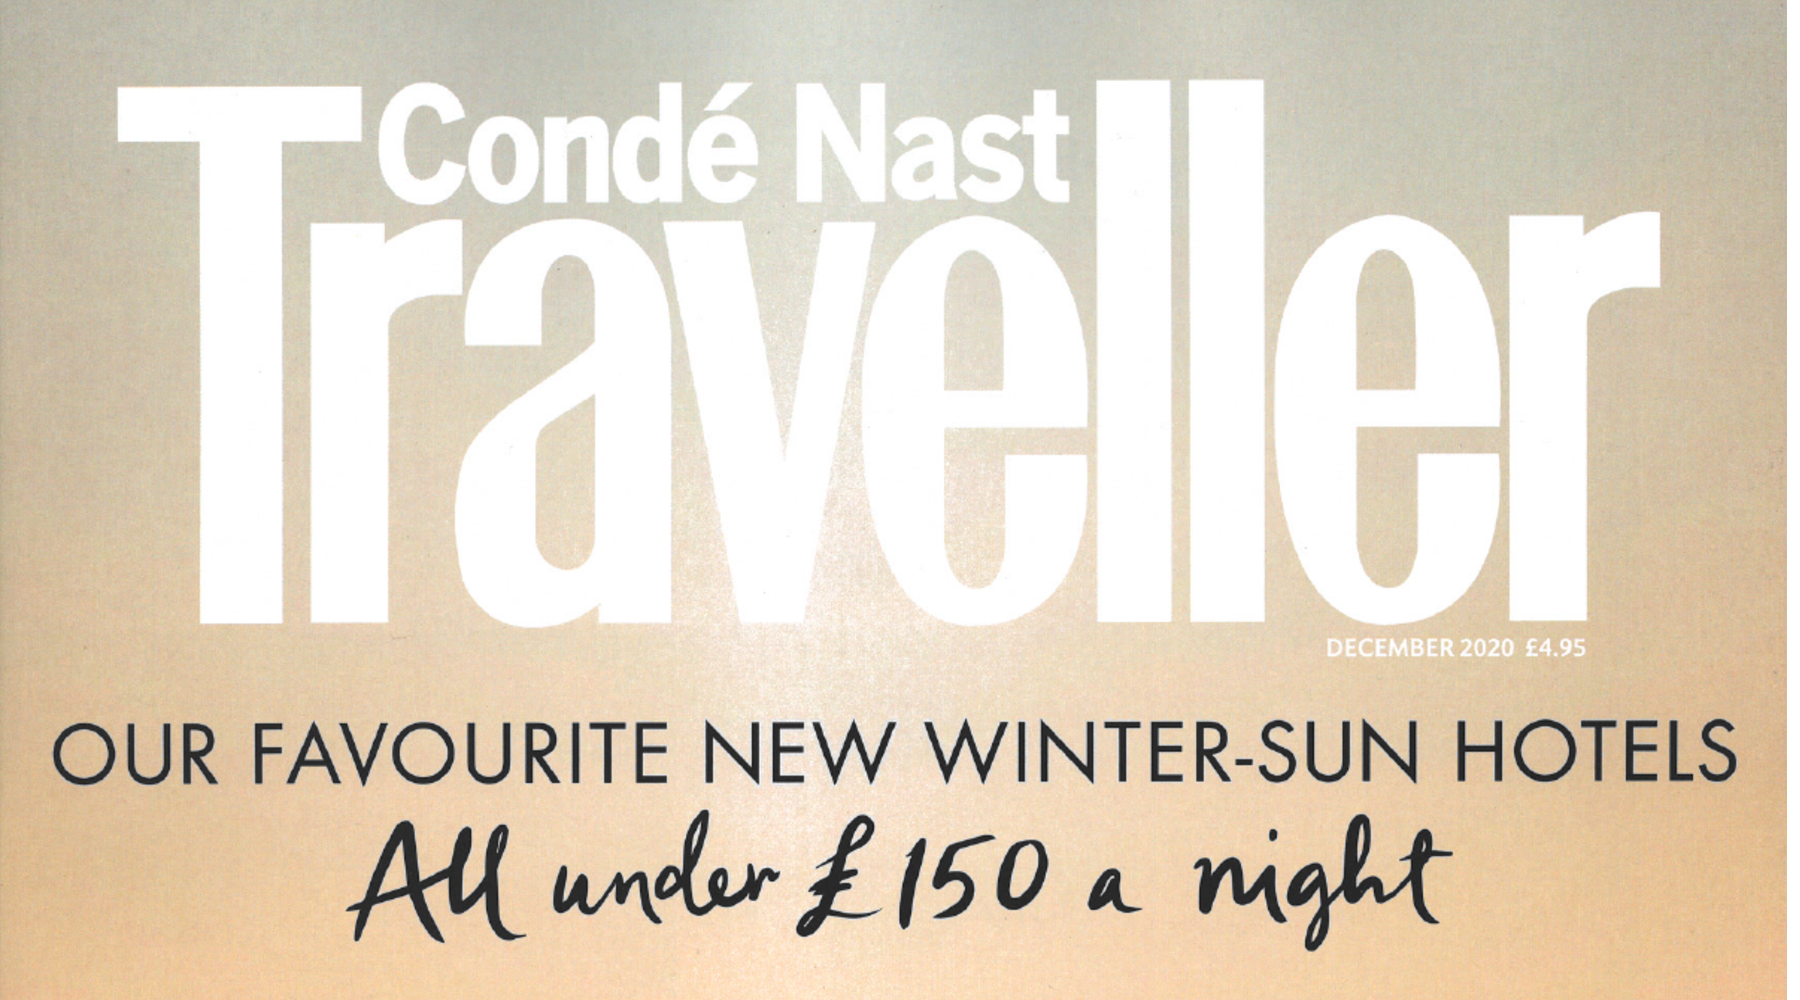 5th Nov | Condé Nast Traveller - December 2020 Issue